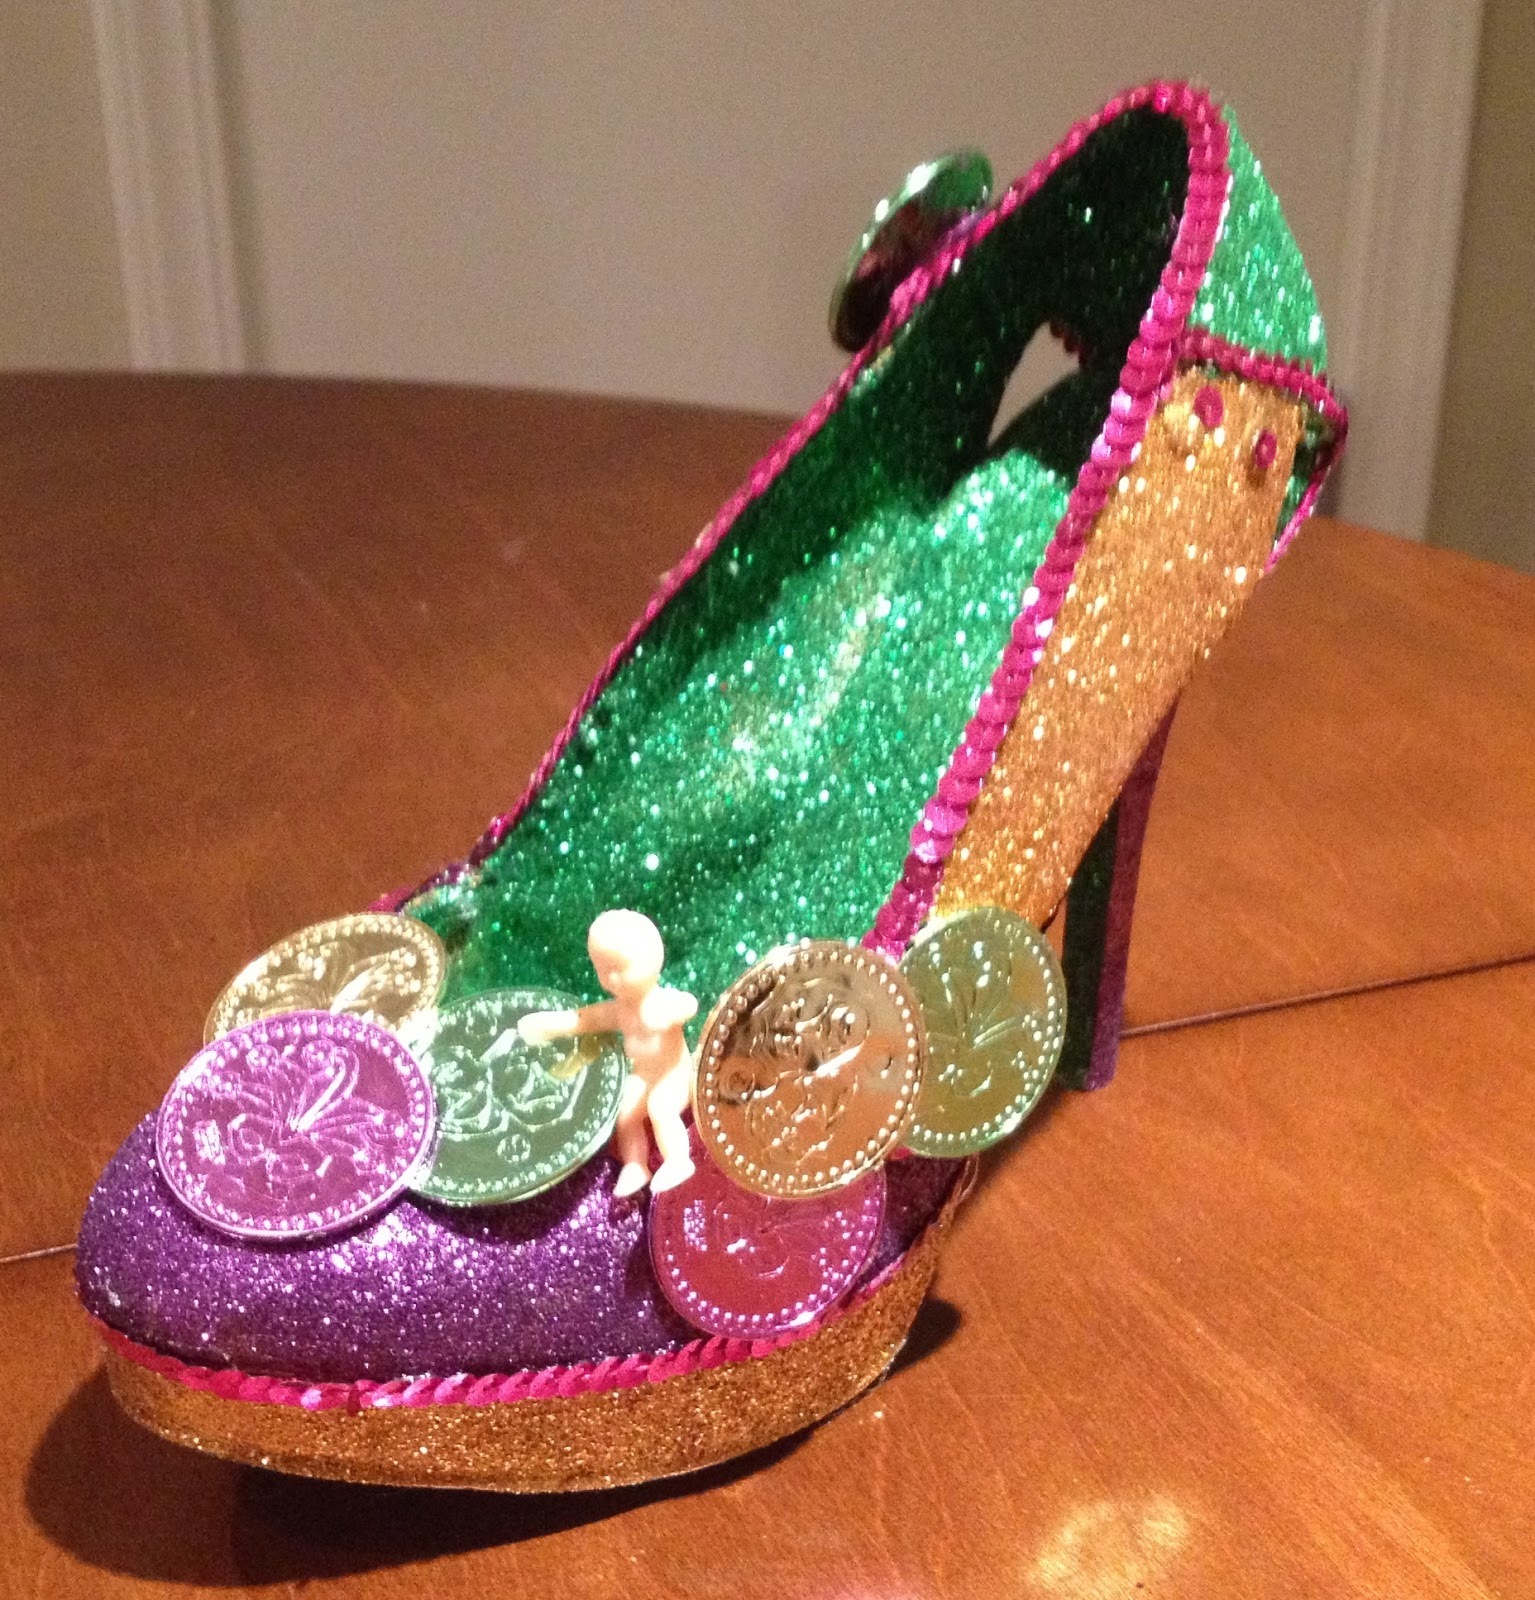 King Cake Baby Hanging Out In The Clusters Of Doubloons On The Front Of The Shoe Sole And Interior Were Glittered Green